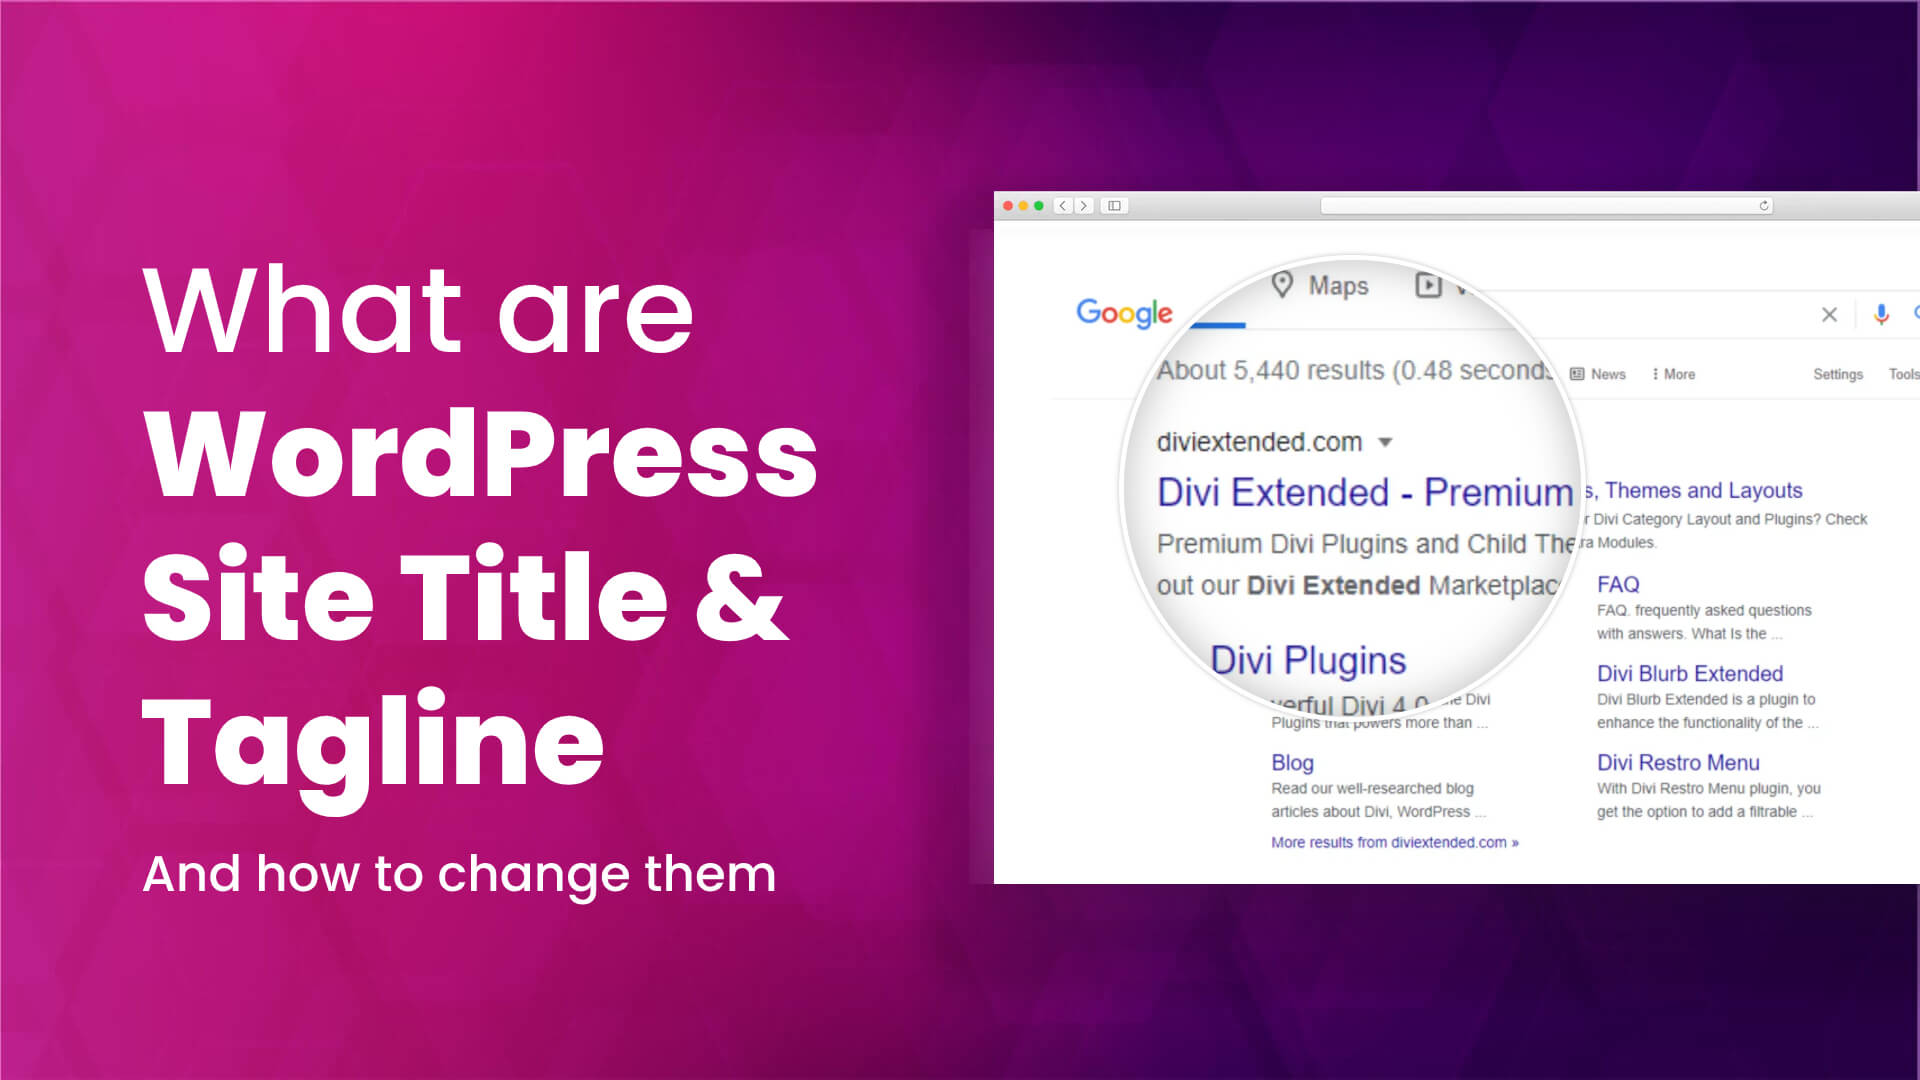 What are WordPress site title and tagline